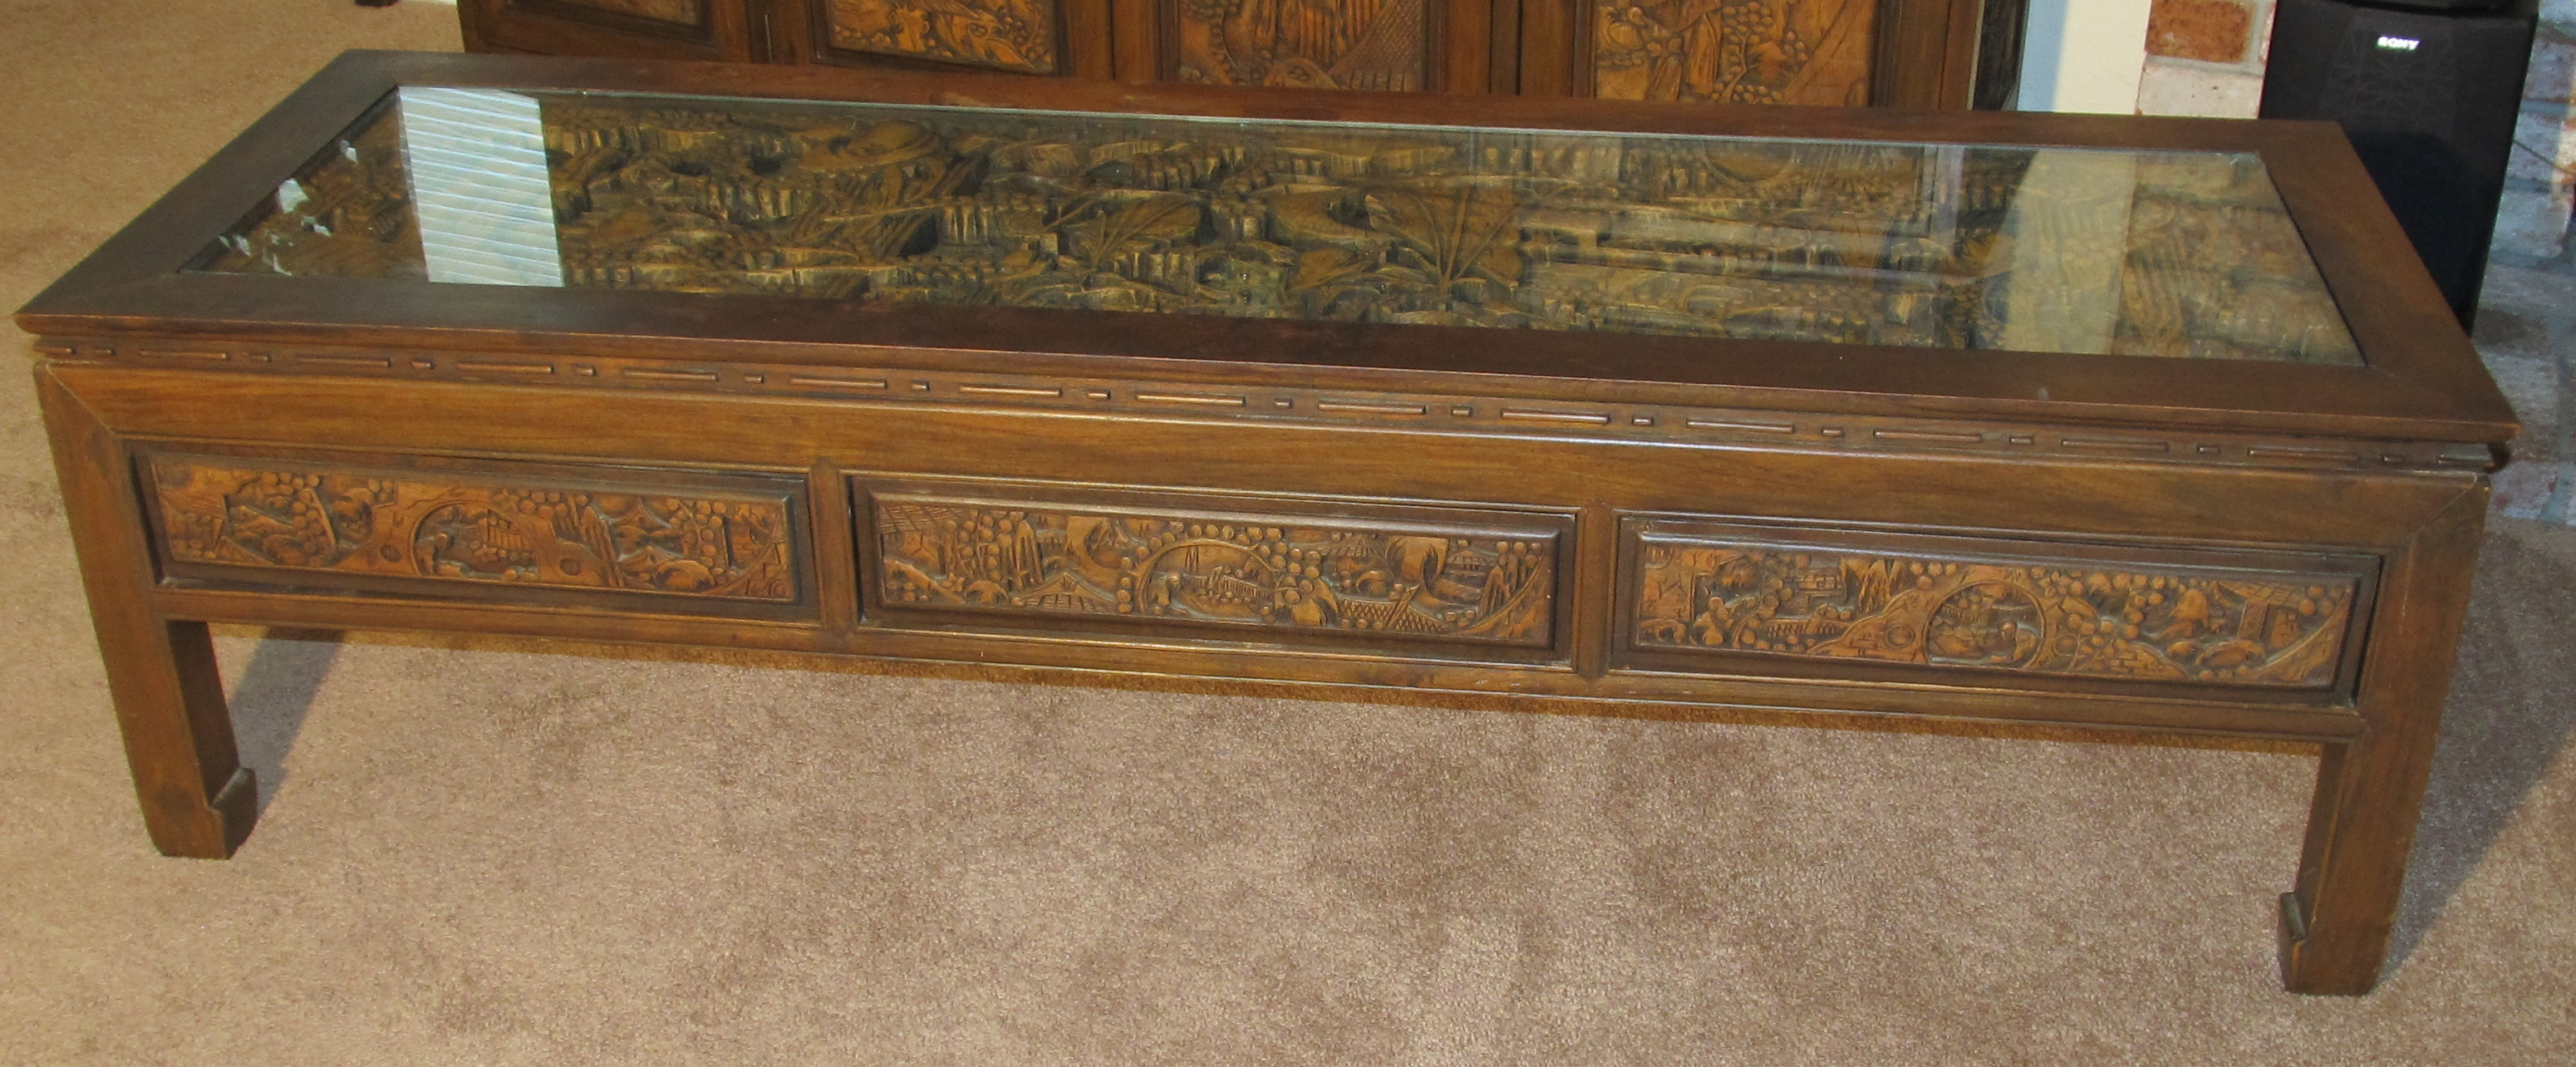 Chinese Carved Teak Furniture Antique Appraisal Instappraisal